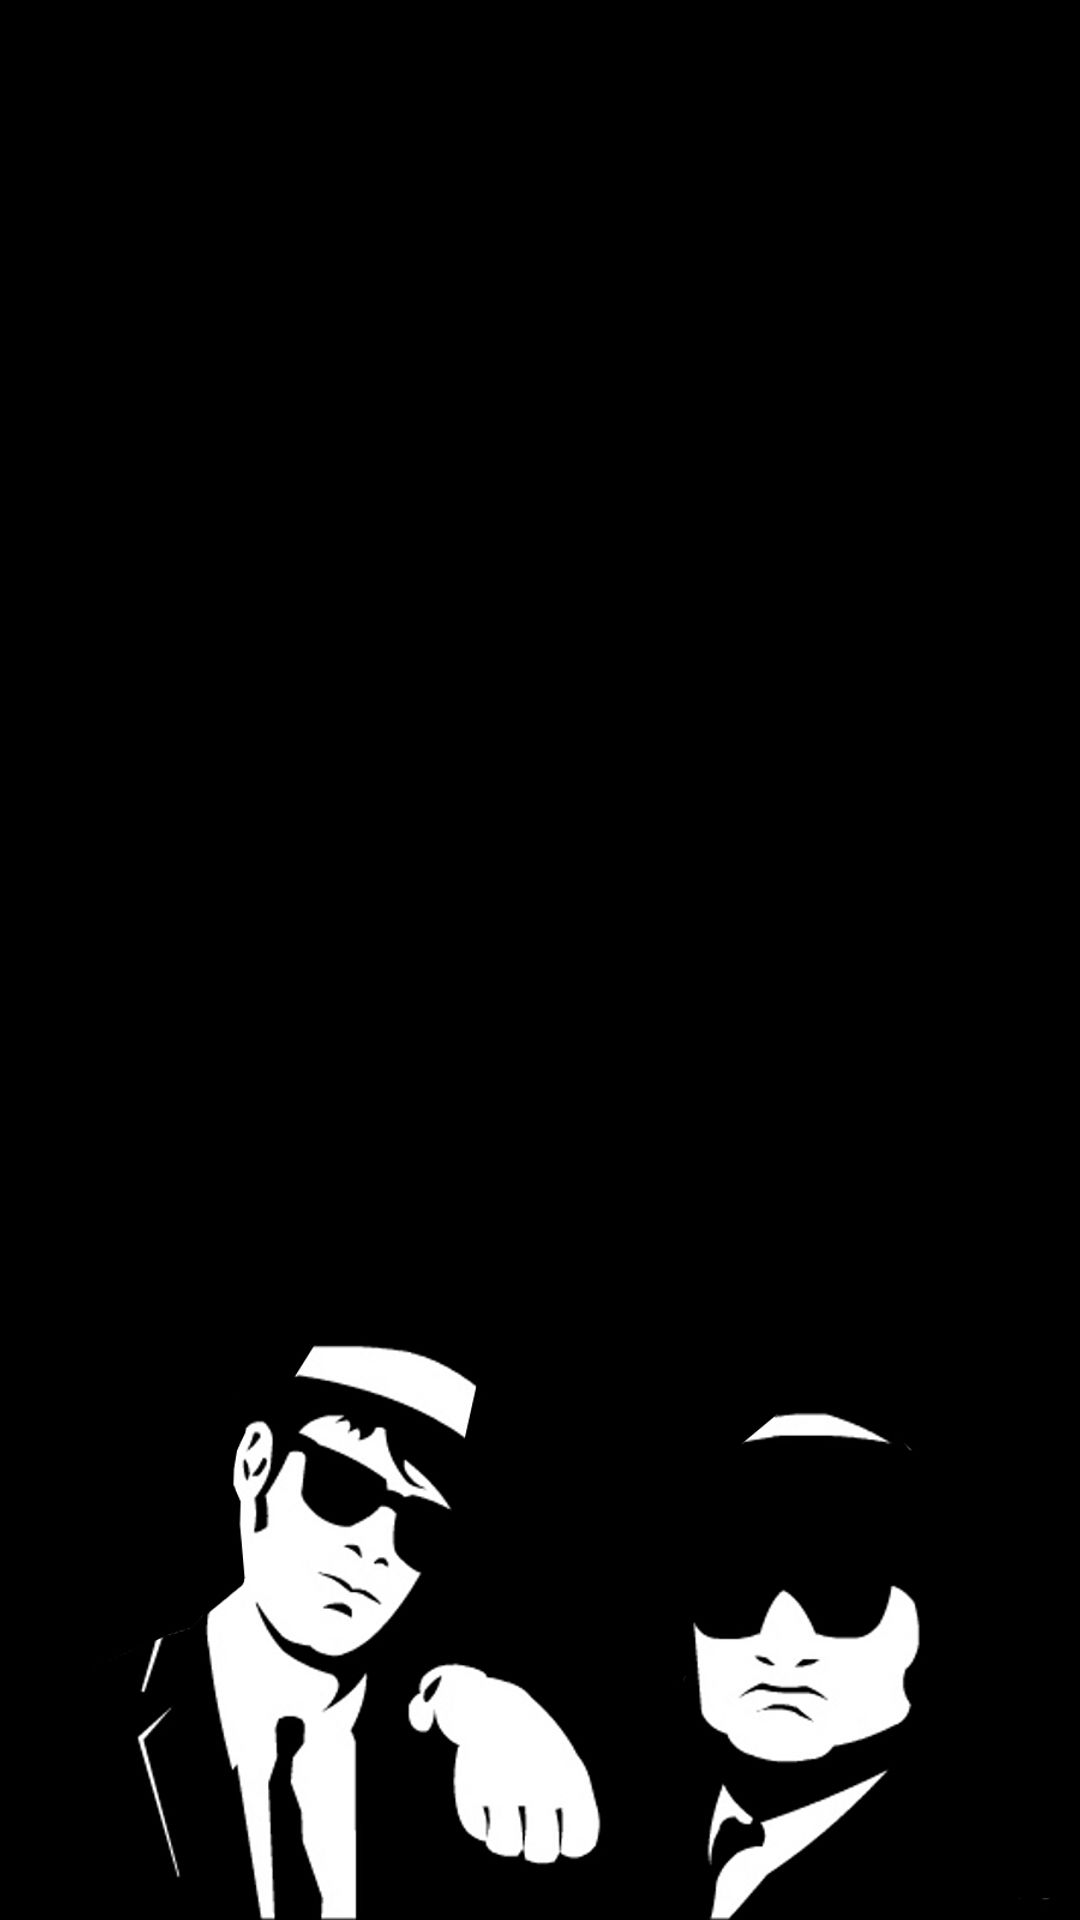 The Blues Brothers Cool Wallpaper Black Backgrounds